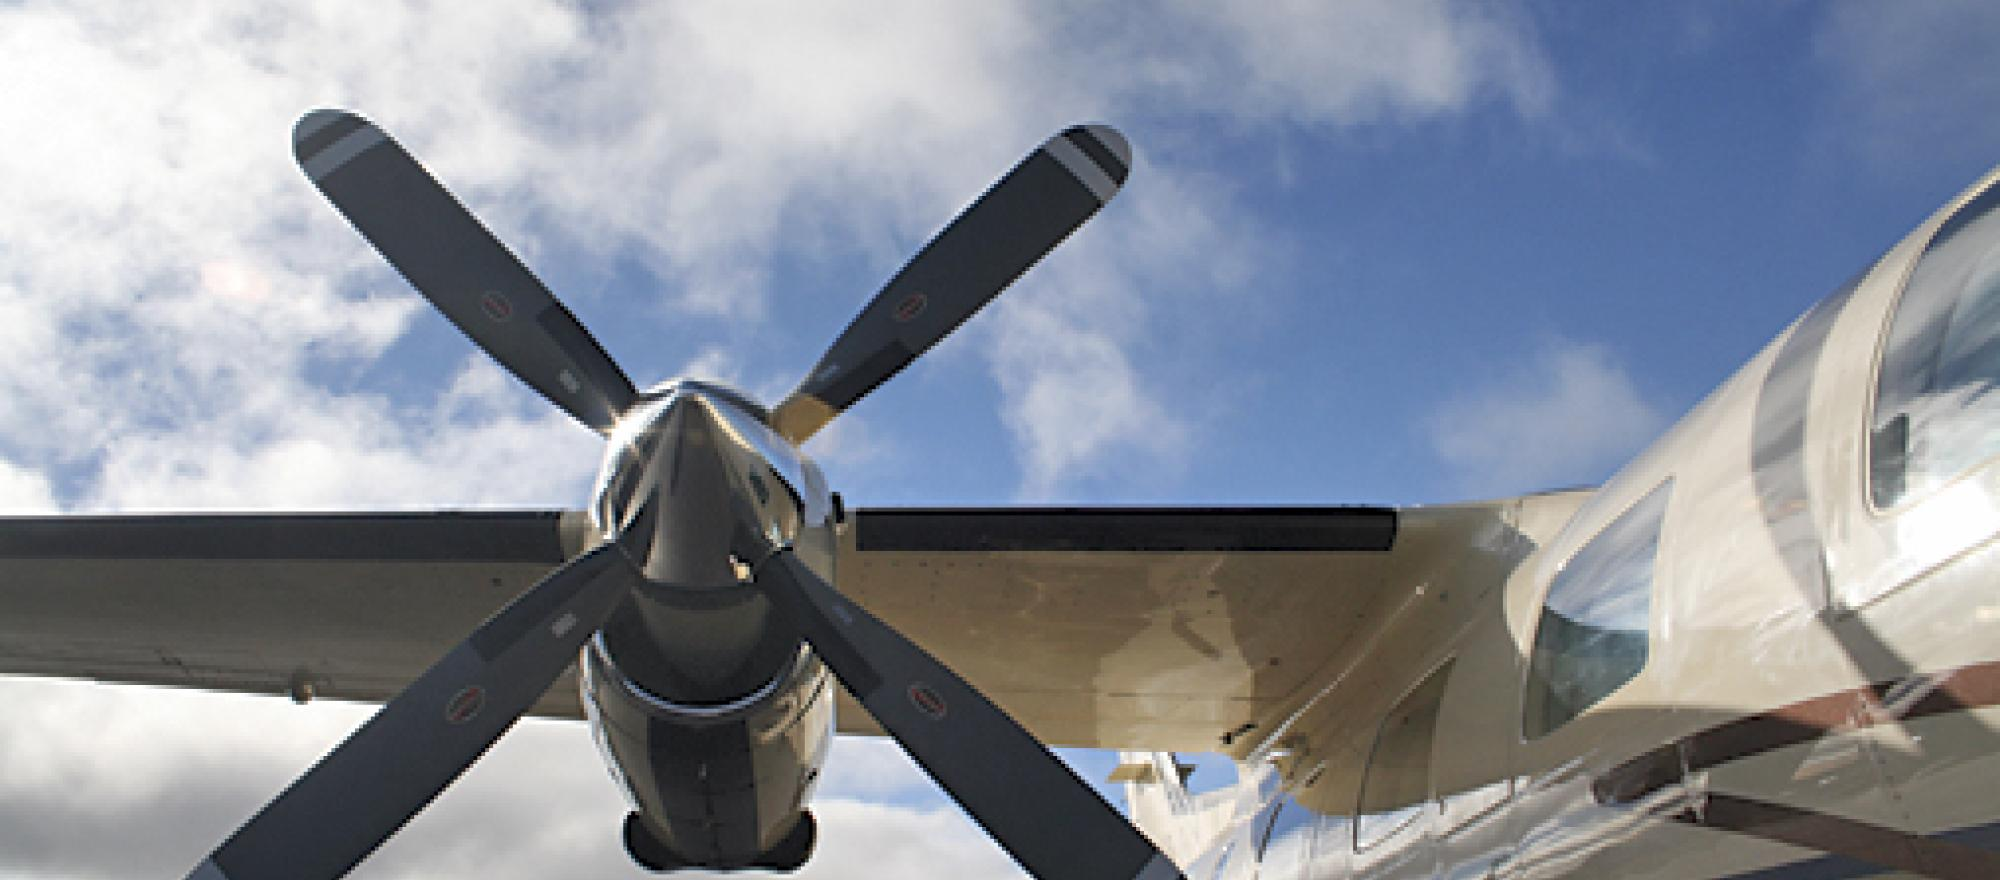 The position of the propellers on the MU-2 means that passengers will notice